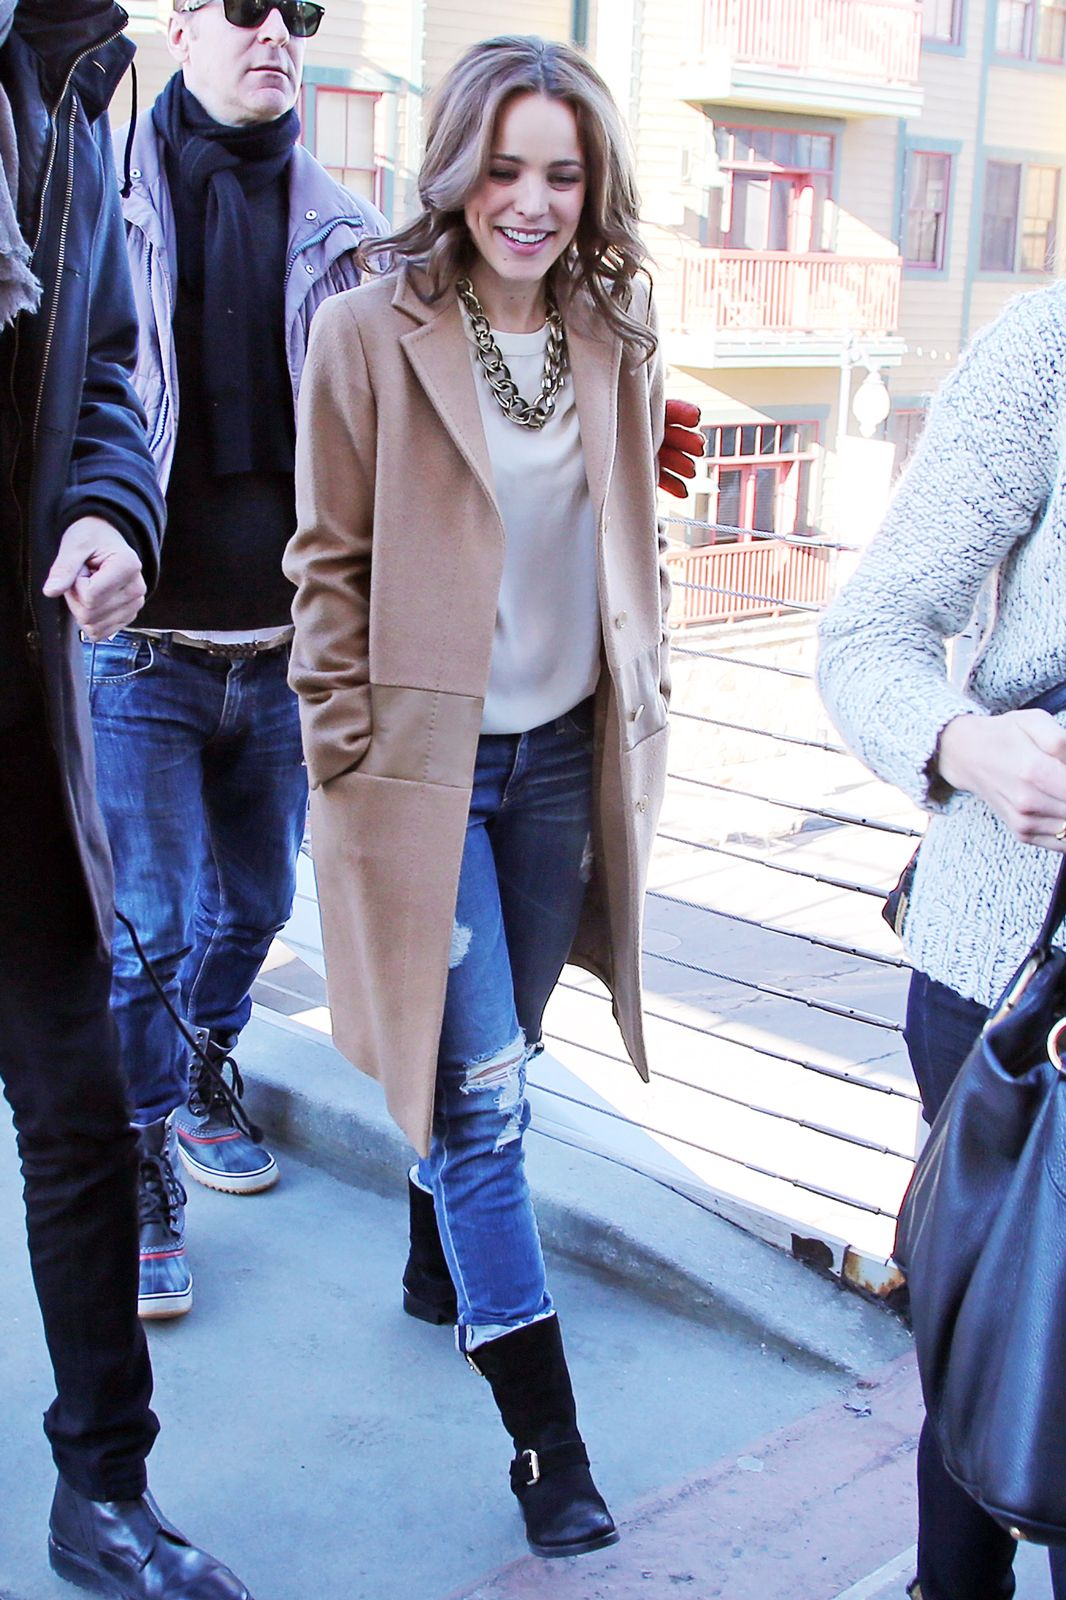 Forum on this topic: Celebrities at Sundance Show Off Their Chic , celebrities-at-sundance-show-off-their-chic/